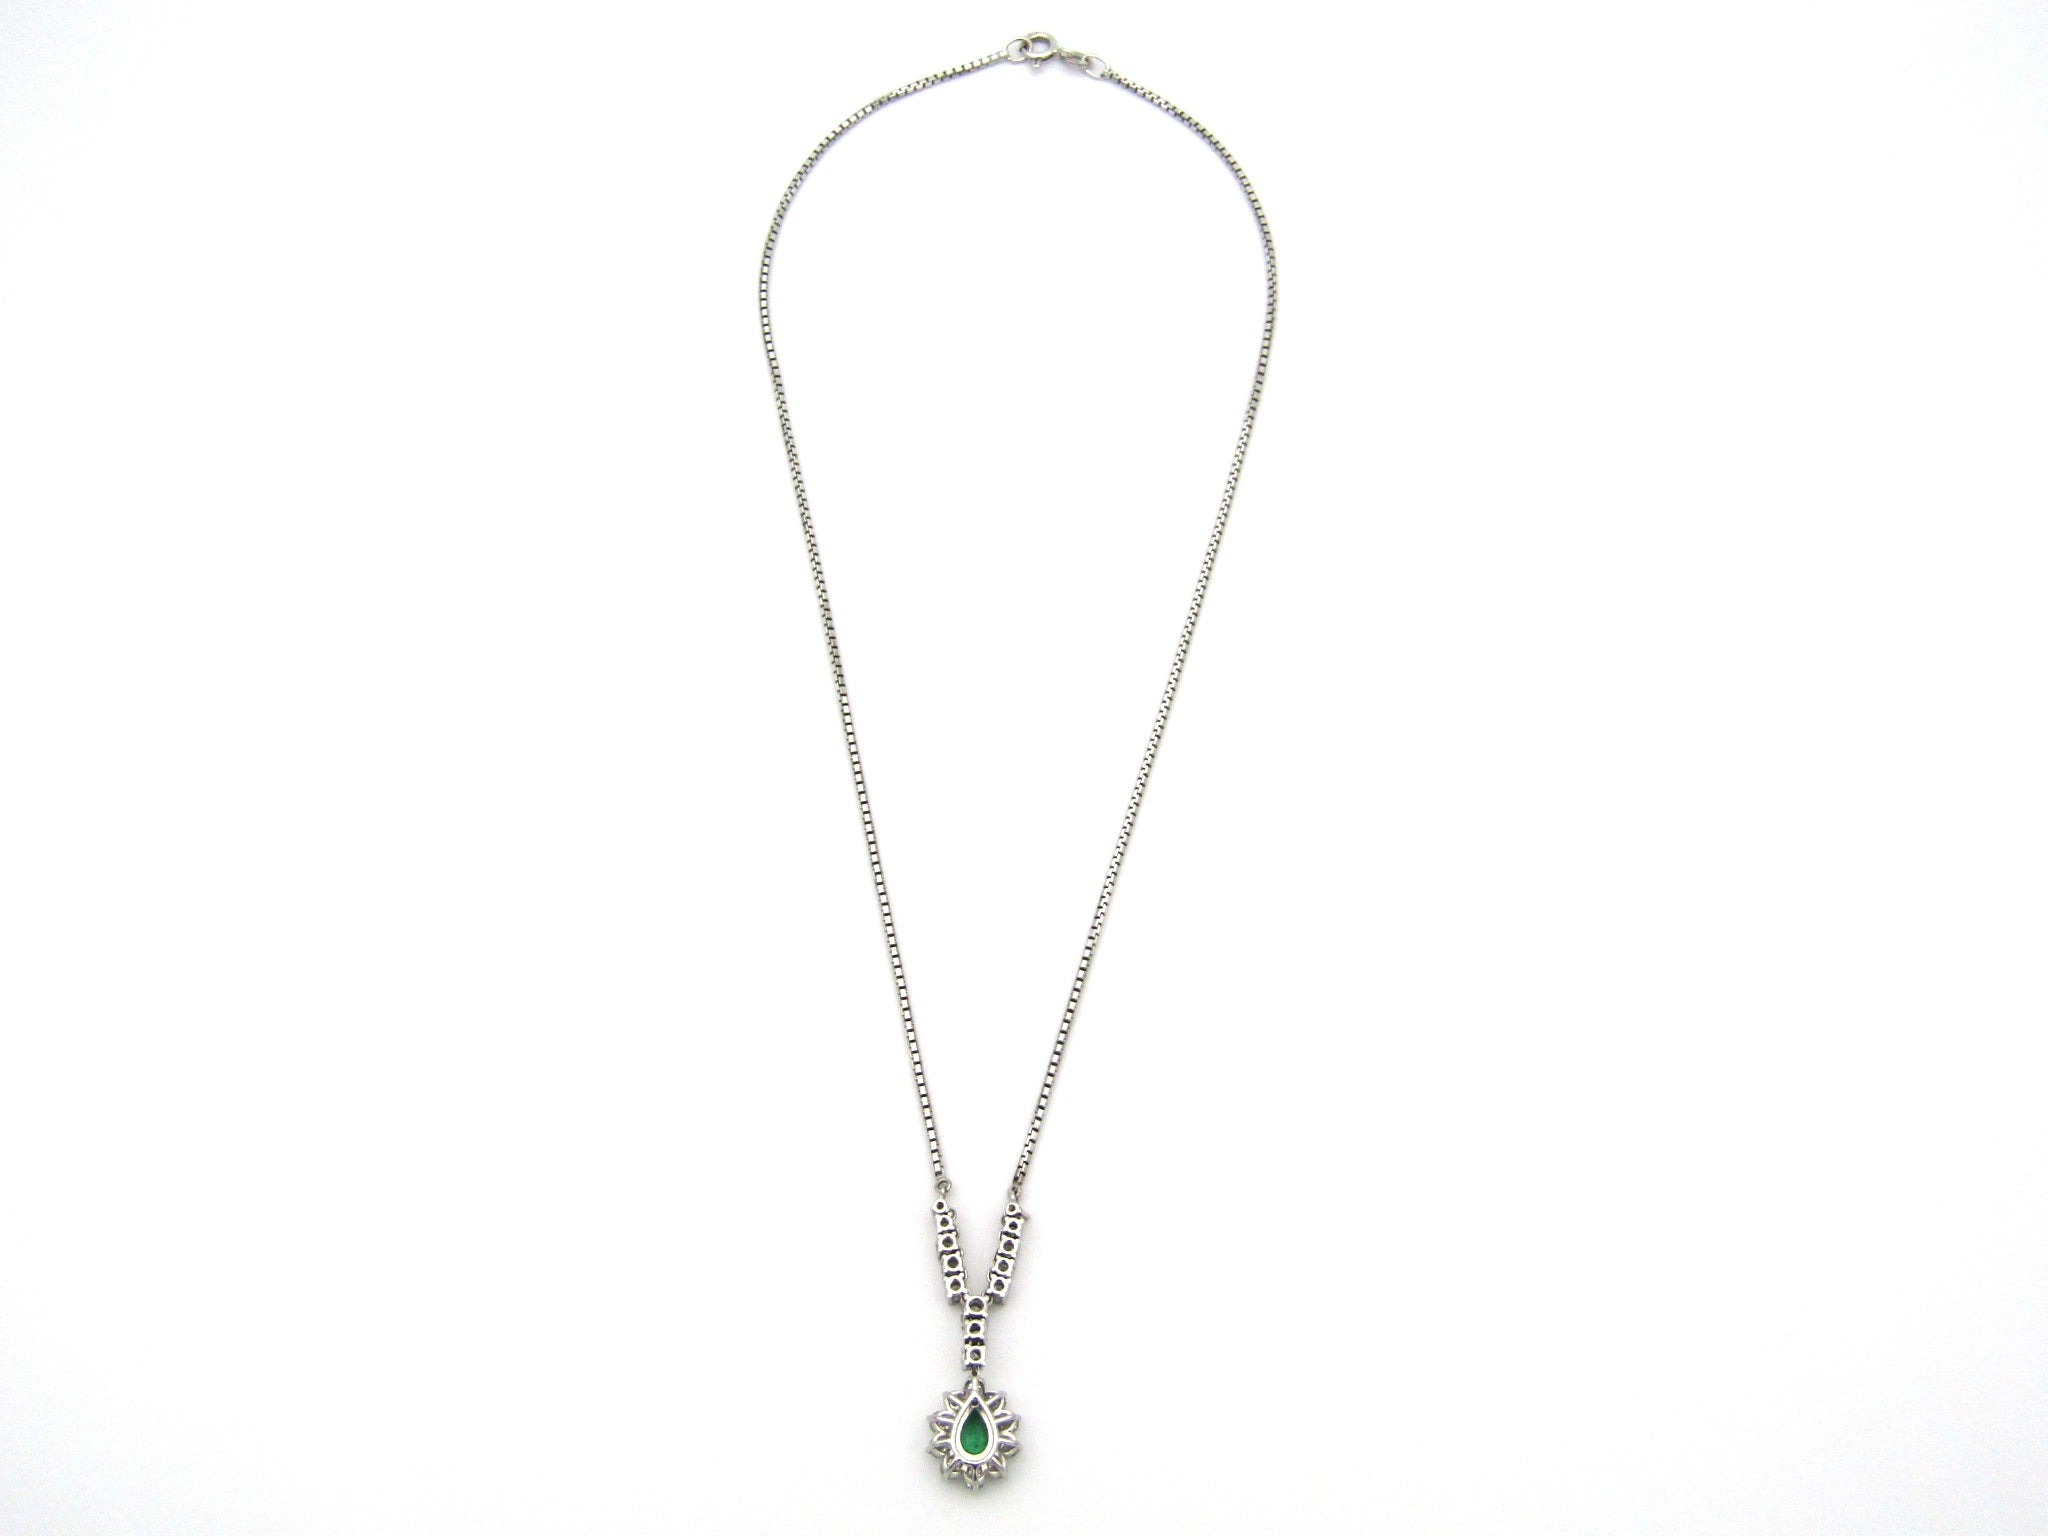 18K gold emerald and diamond necklace.